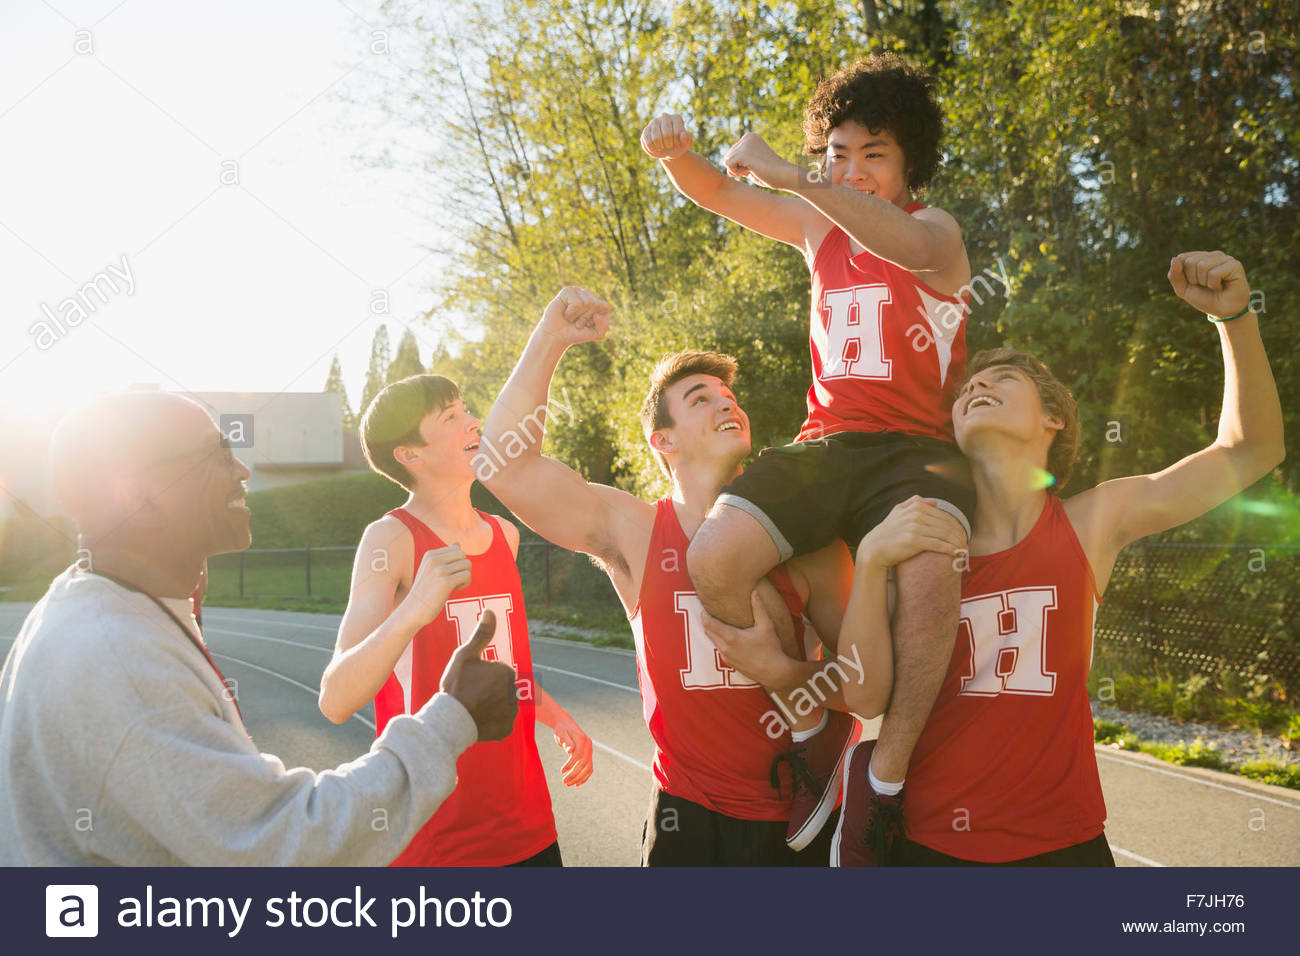 Enthusiastic high school track and field team celebrating - Stock Image